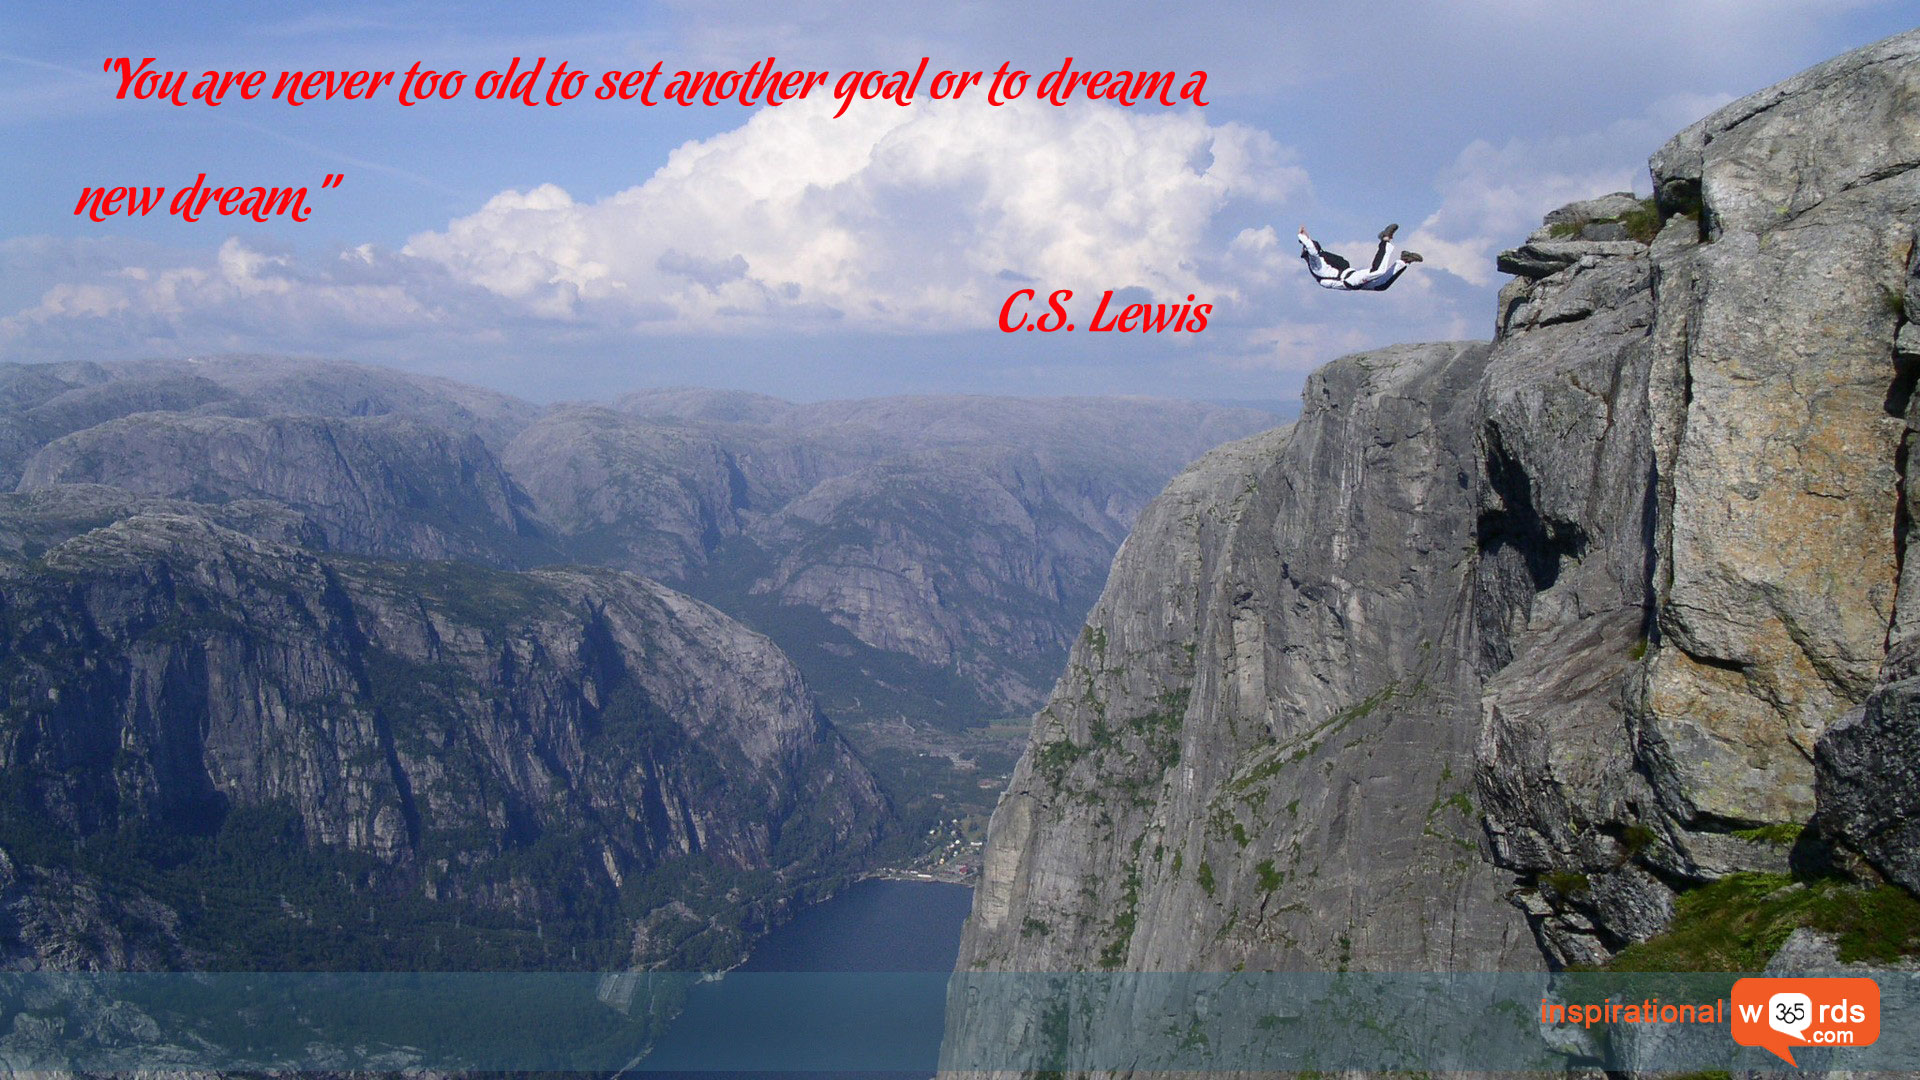 Inspirational Wallpaper Quote by C.S. Lewis